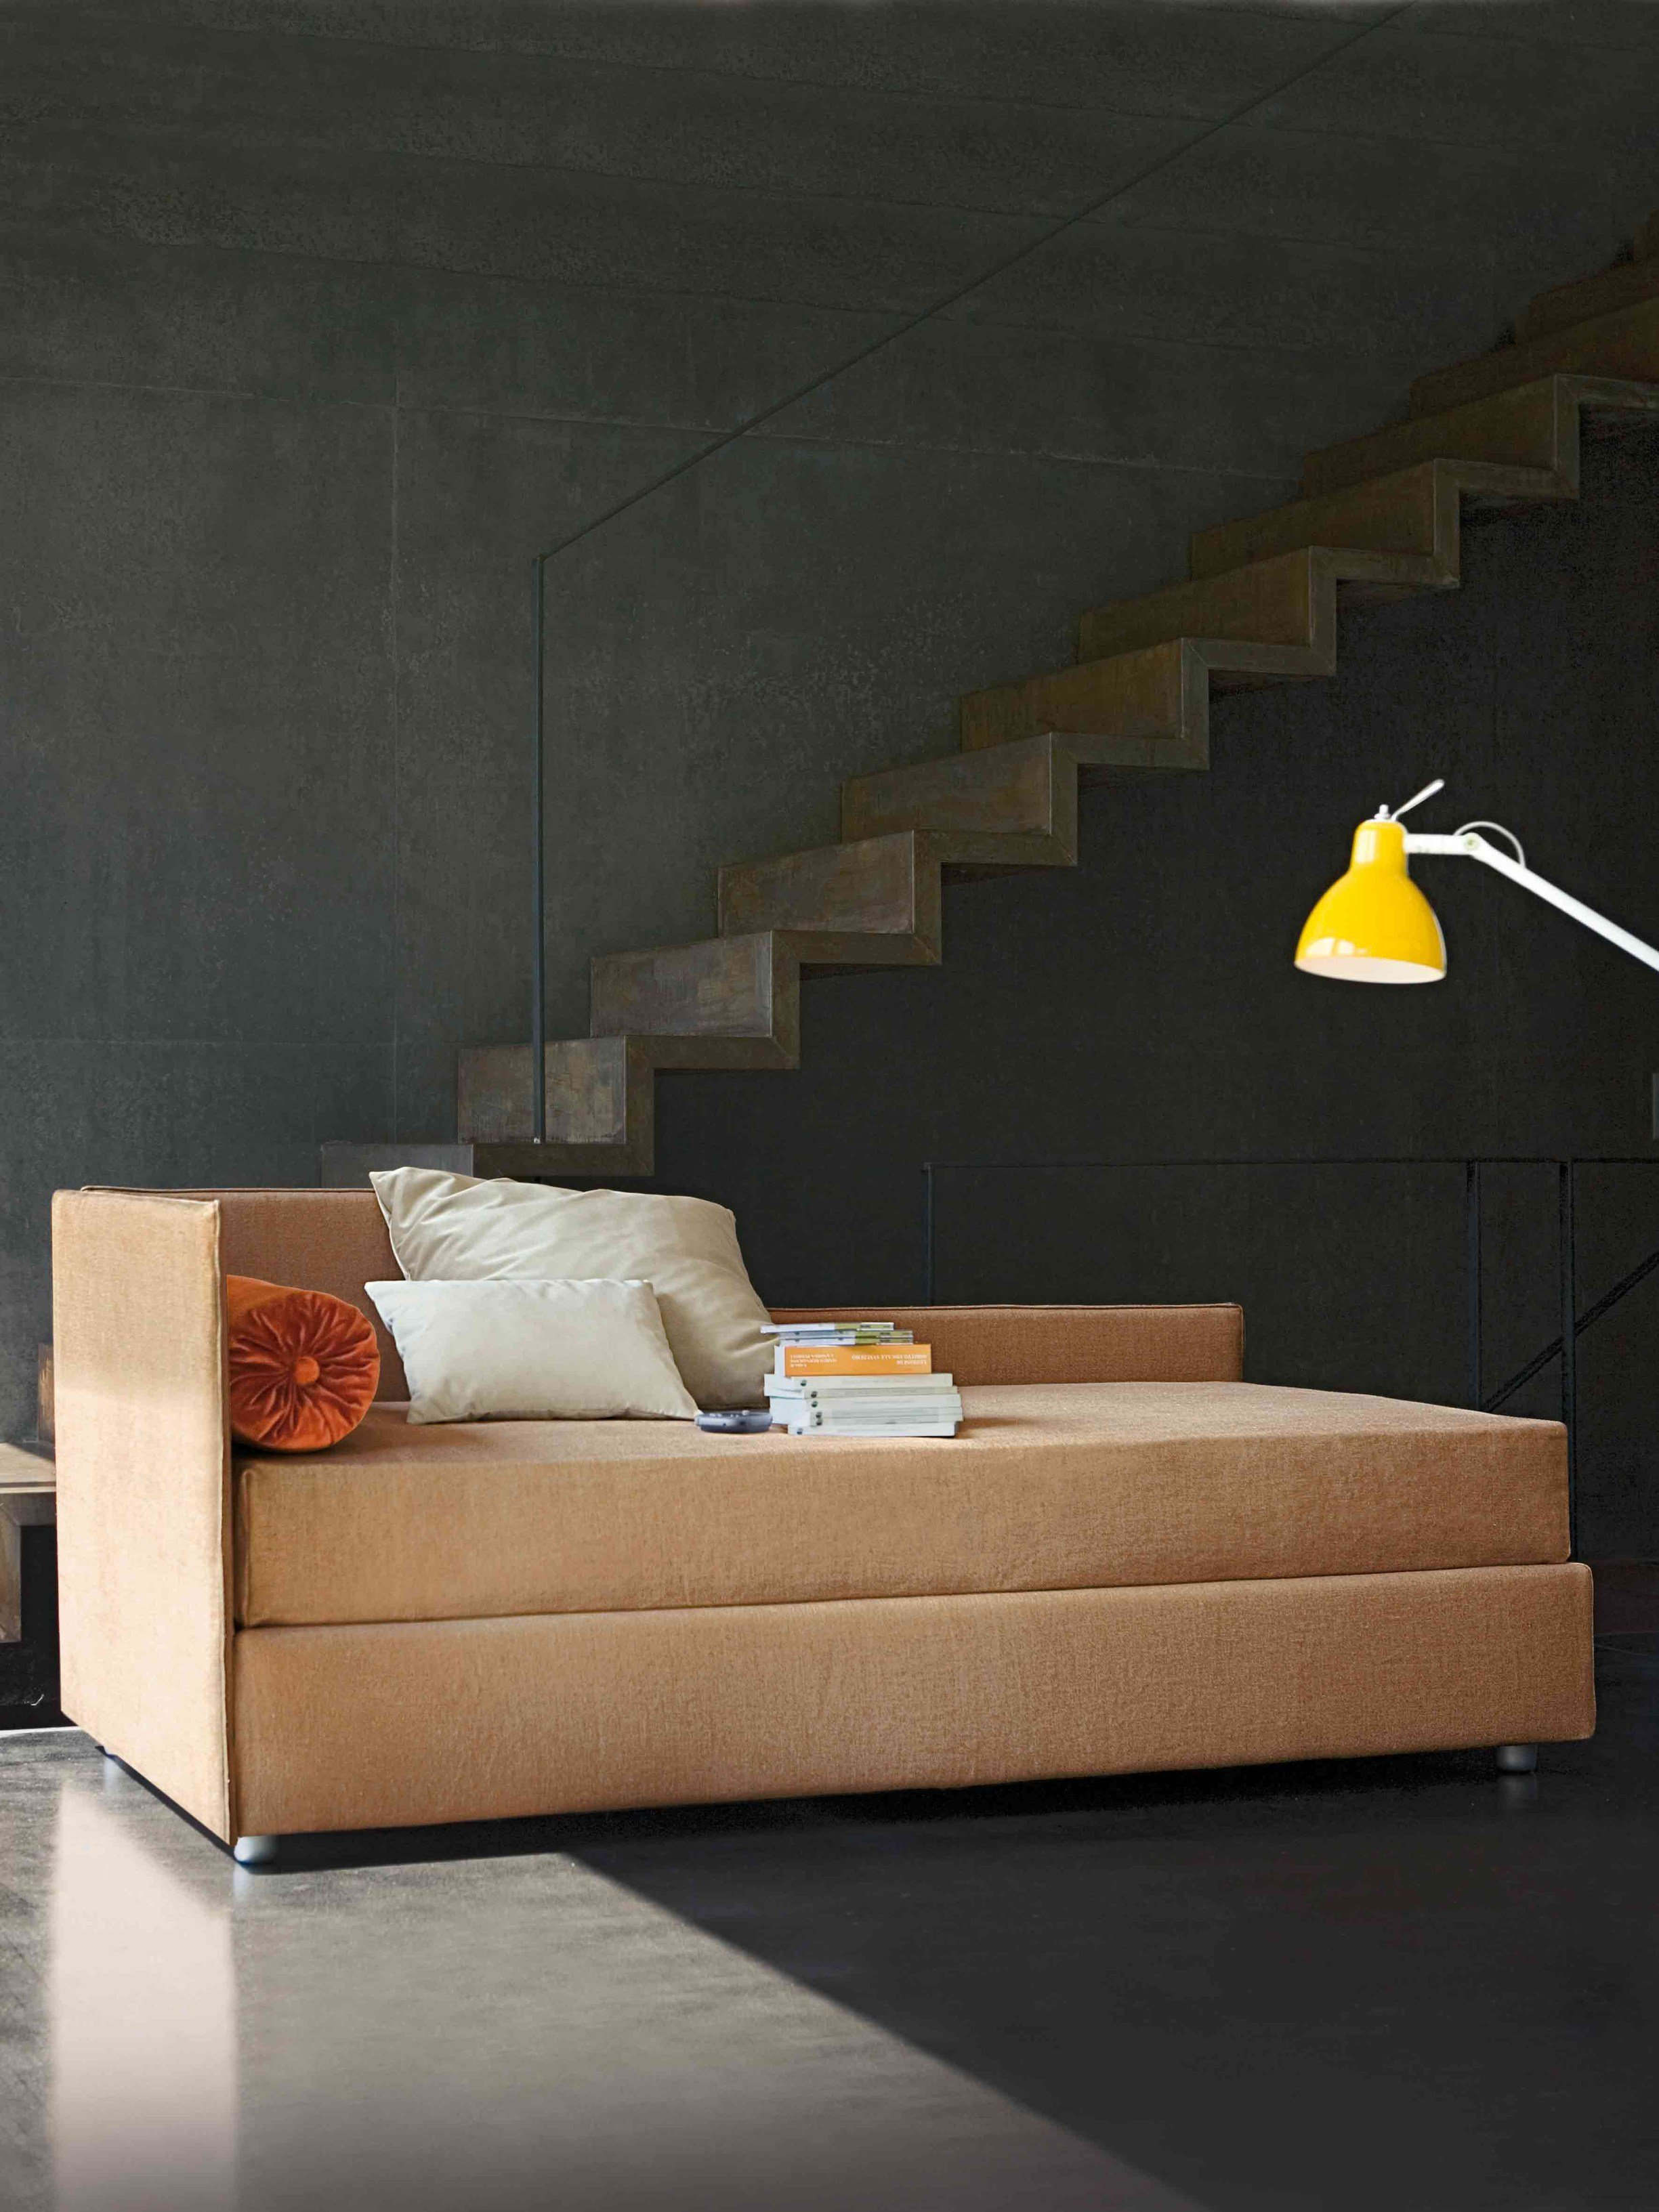 gepolstertes einzelbett mit bettkasten centouno by bonaldo. Black Bedroom Furniture Sets. Home Design Ideas